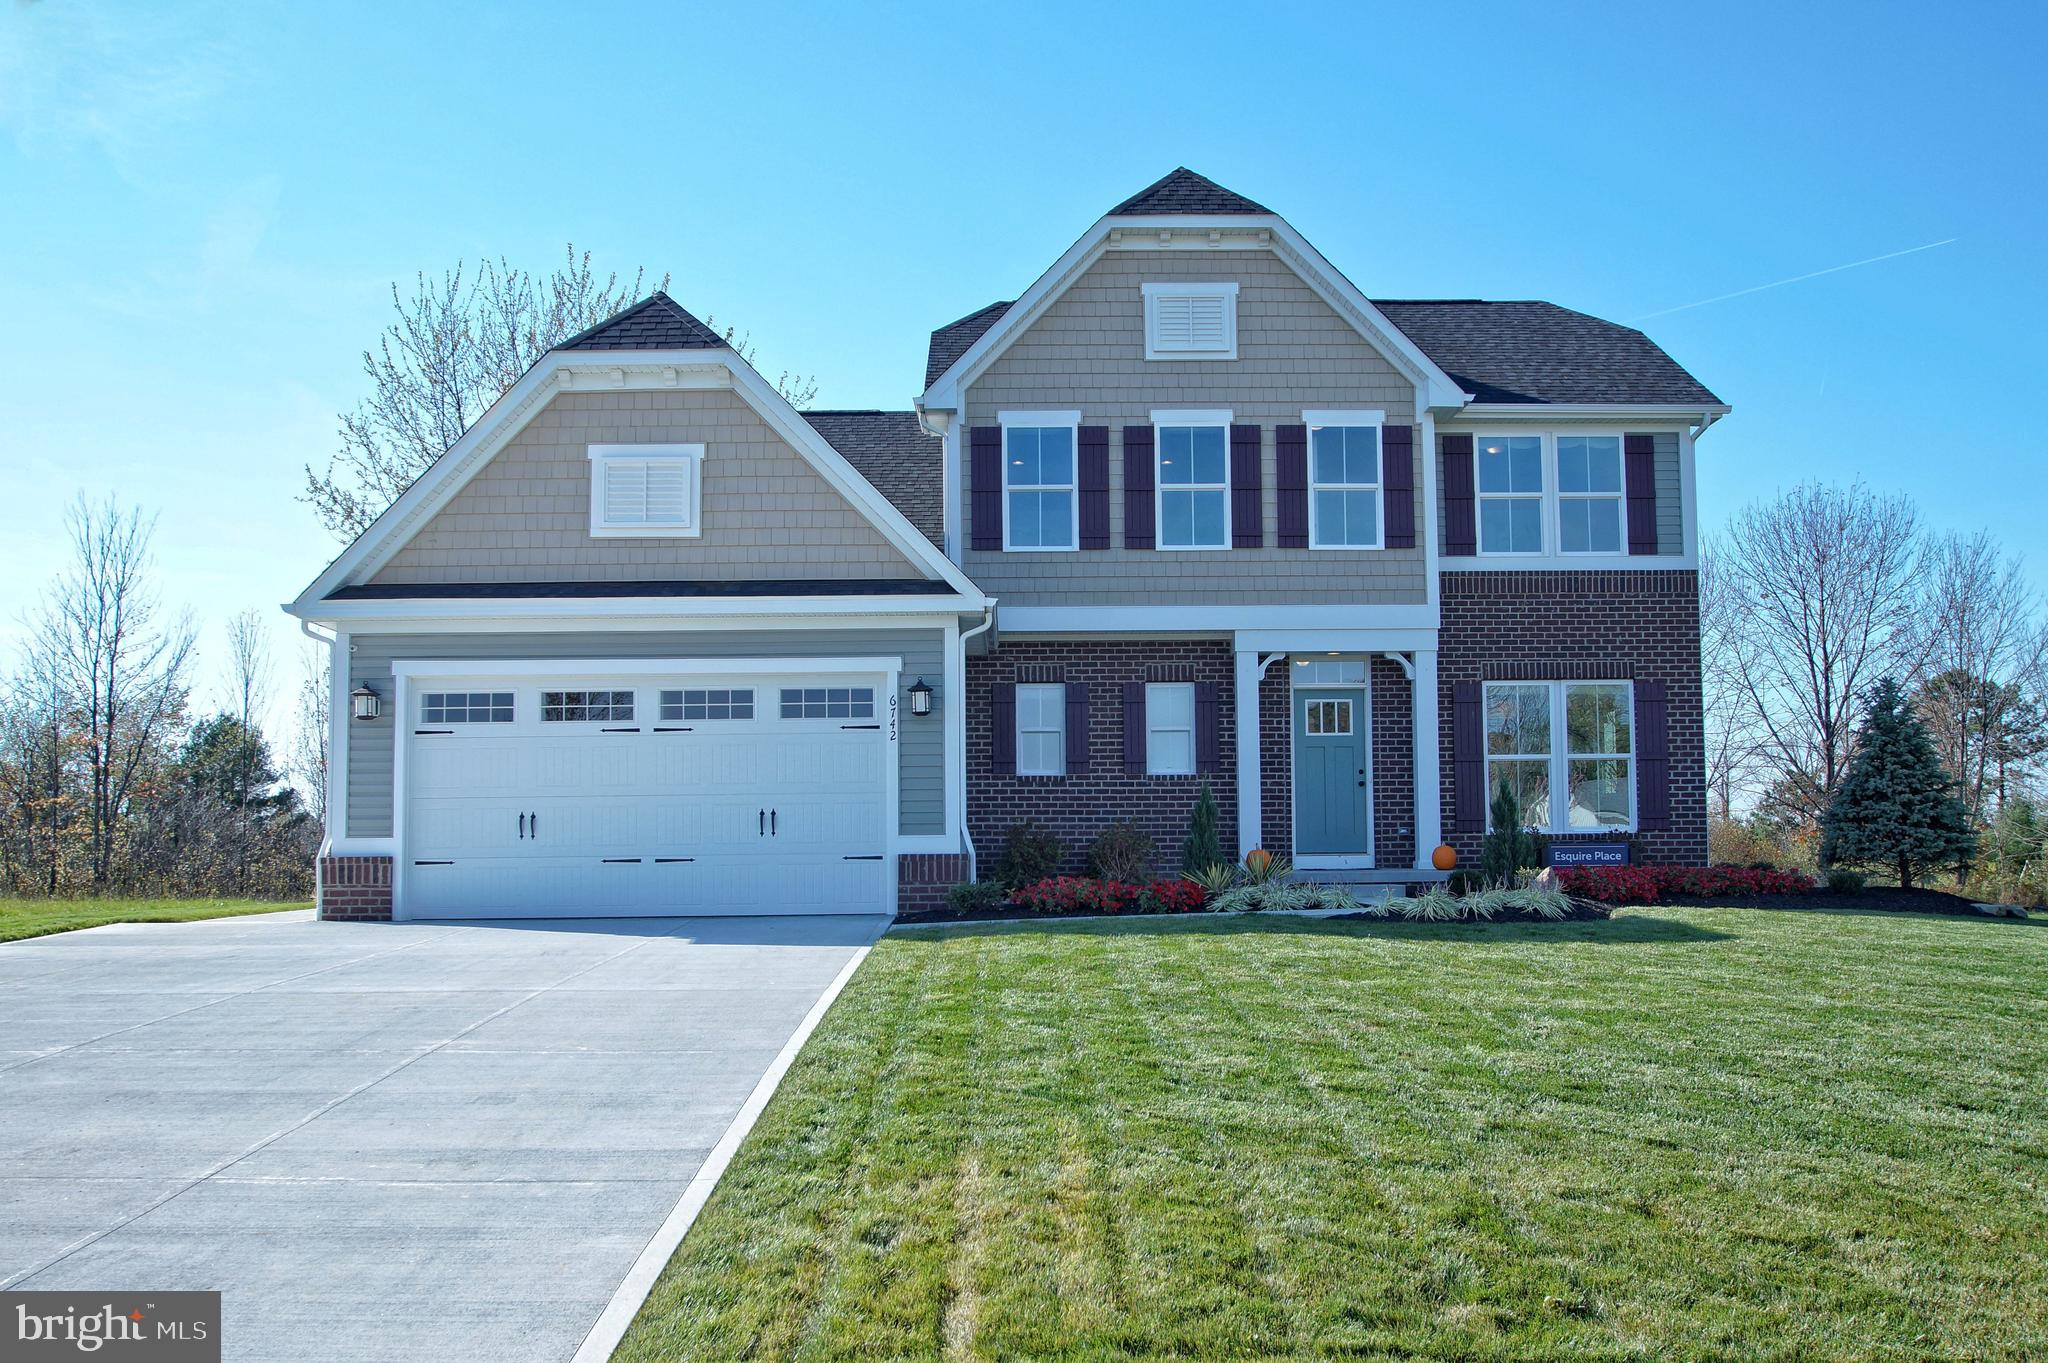 31054 BAREFOOT CIRCLE, HARBESON, DE 19951